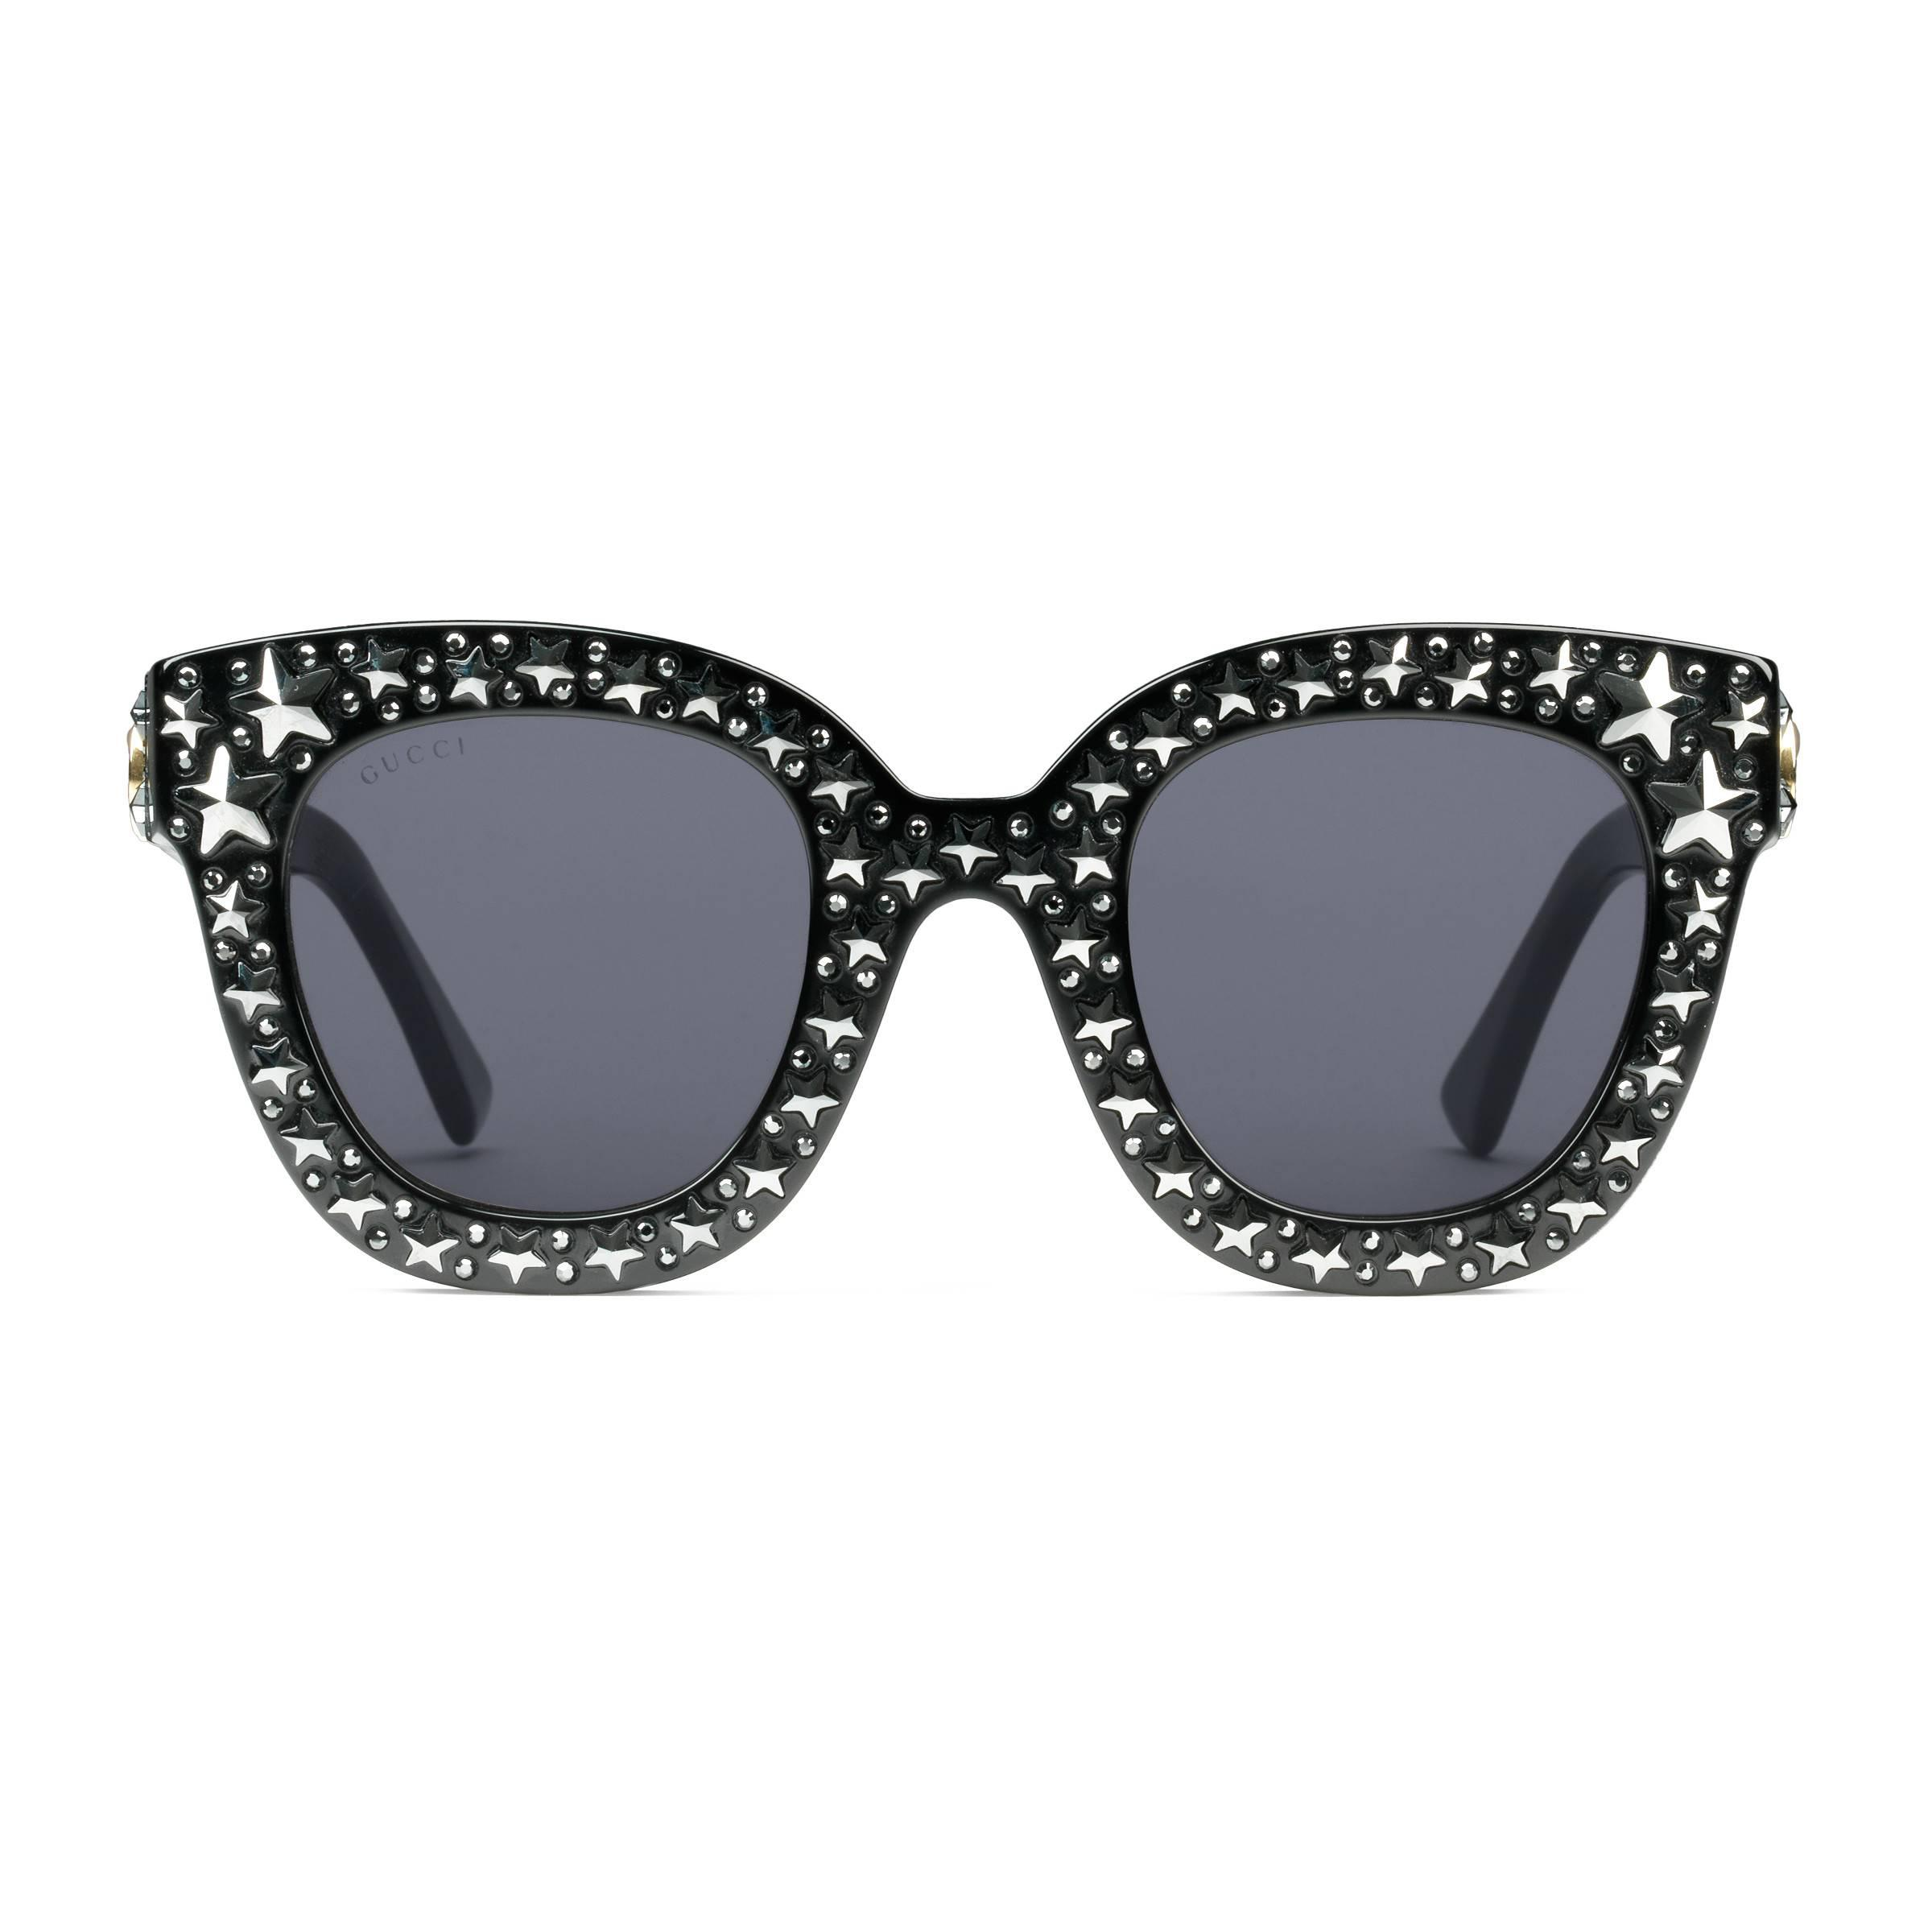 d6372d2ed54 Gucci Cat Eye Acetate Sunglasses With Stars in Black - Save 14% - Lyst